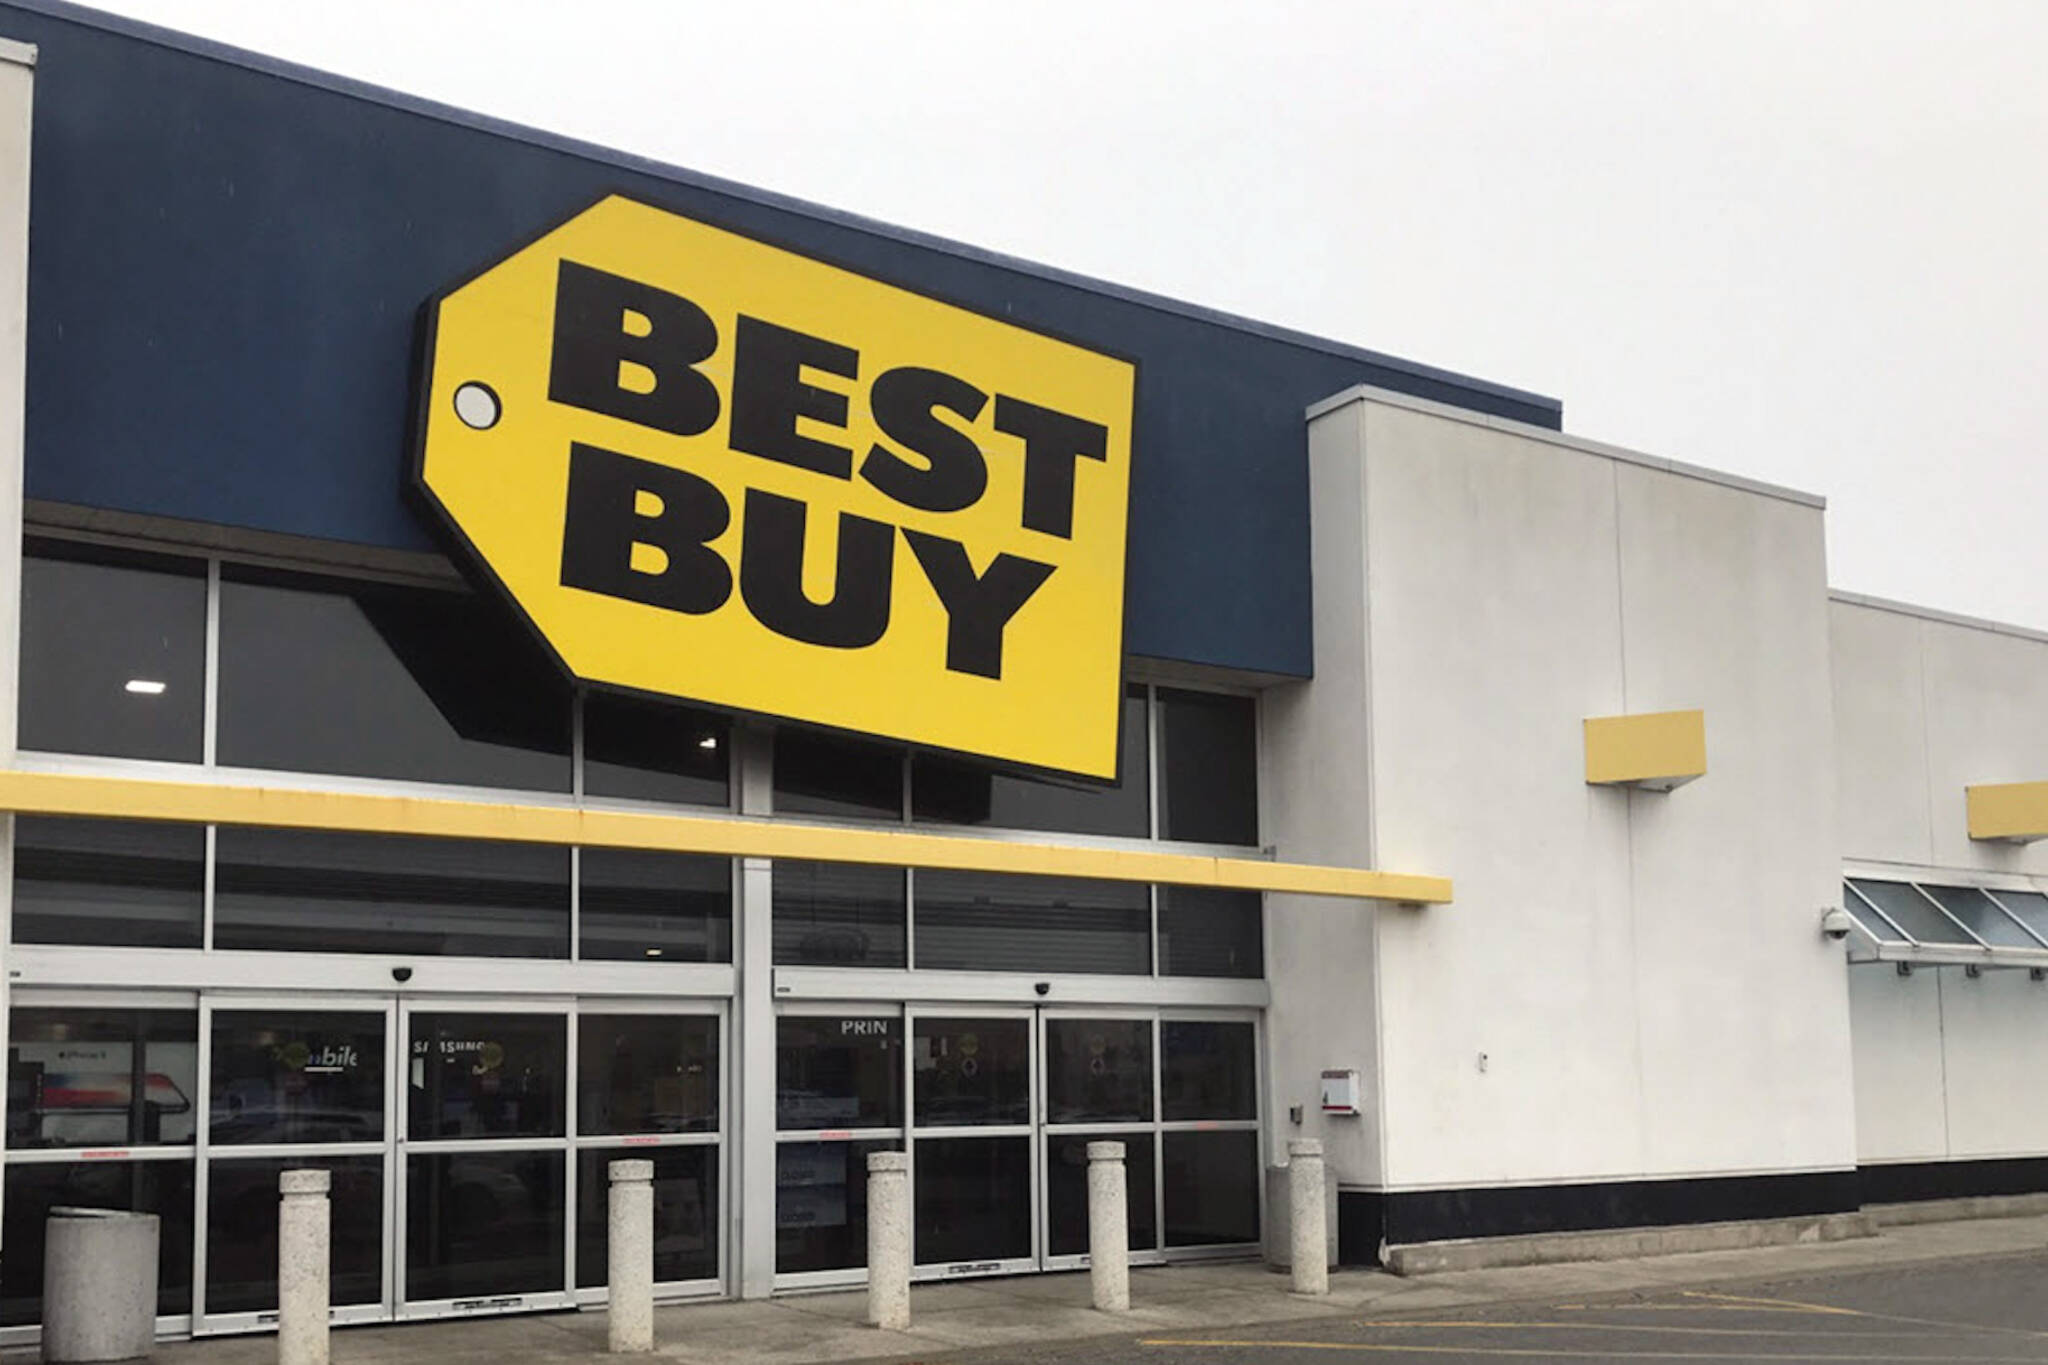 Black Friday Deals In Canada For 2019 Are Already Being Announced